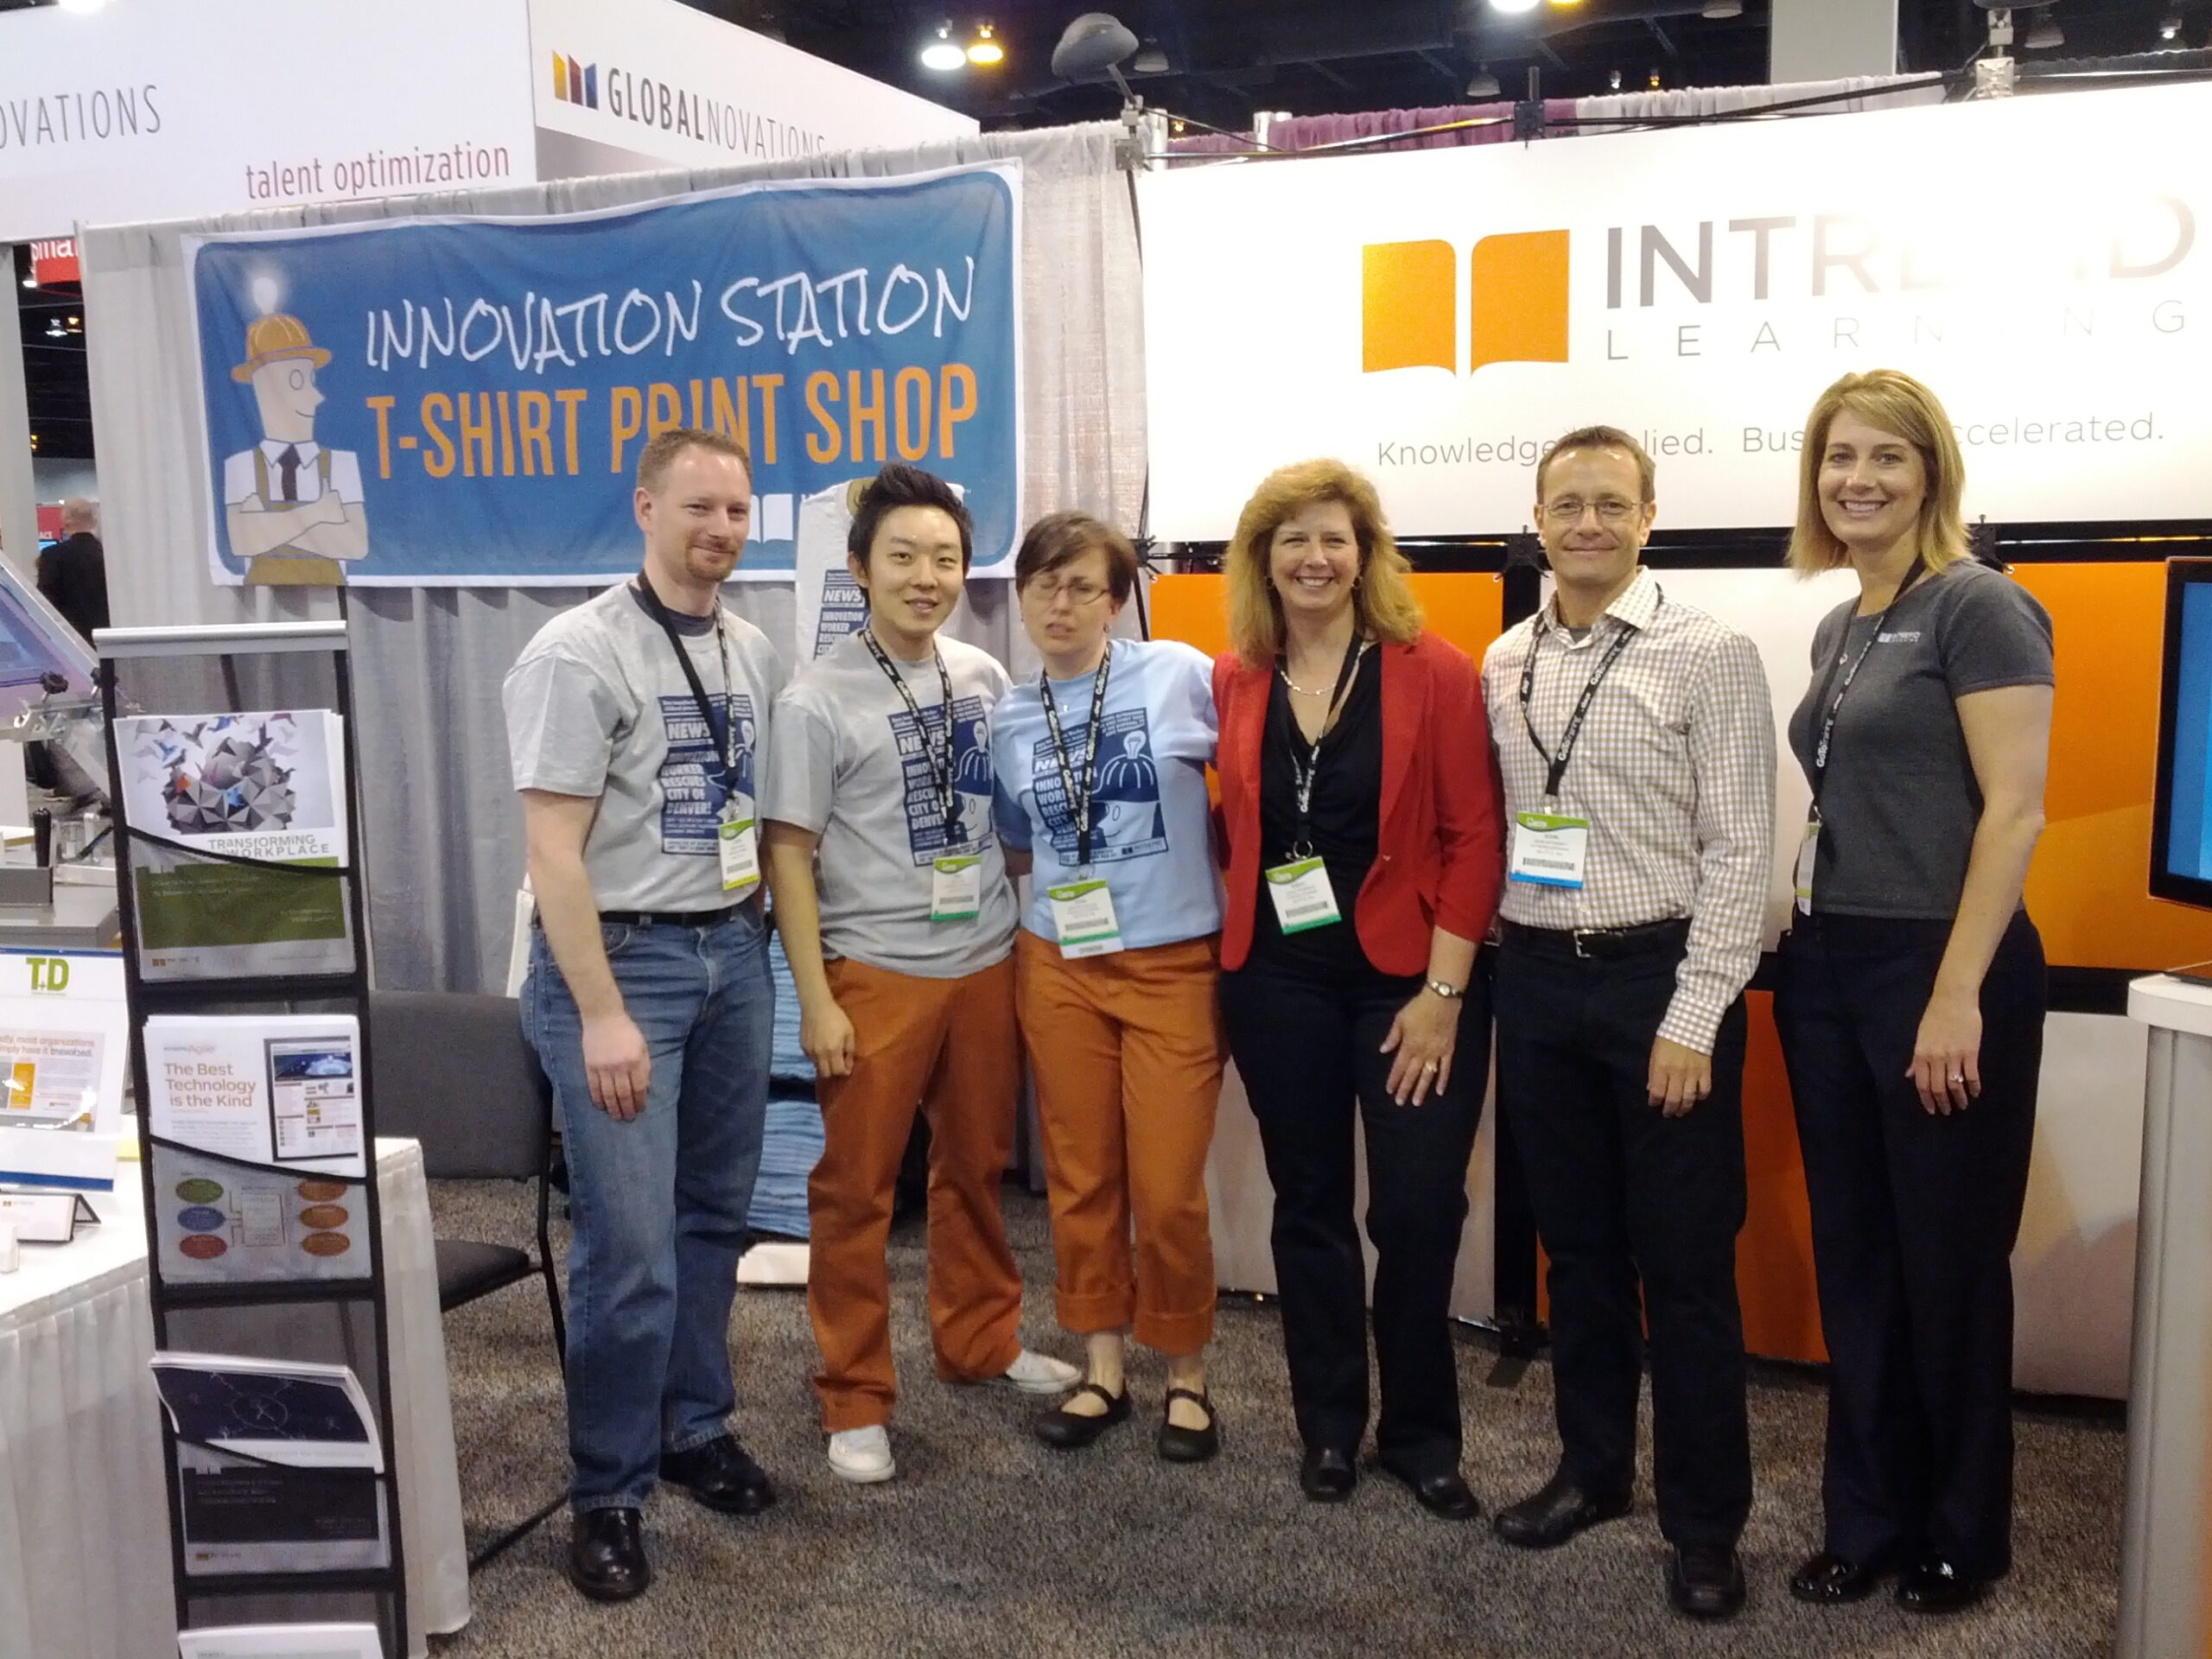 Intrepid Team at ATD Conference